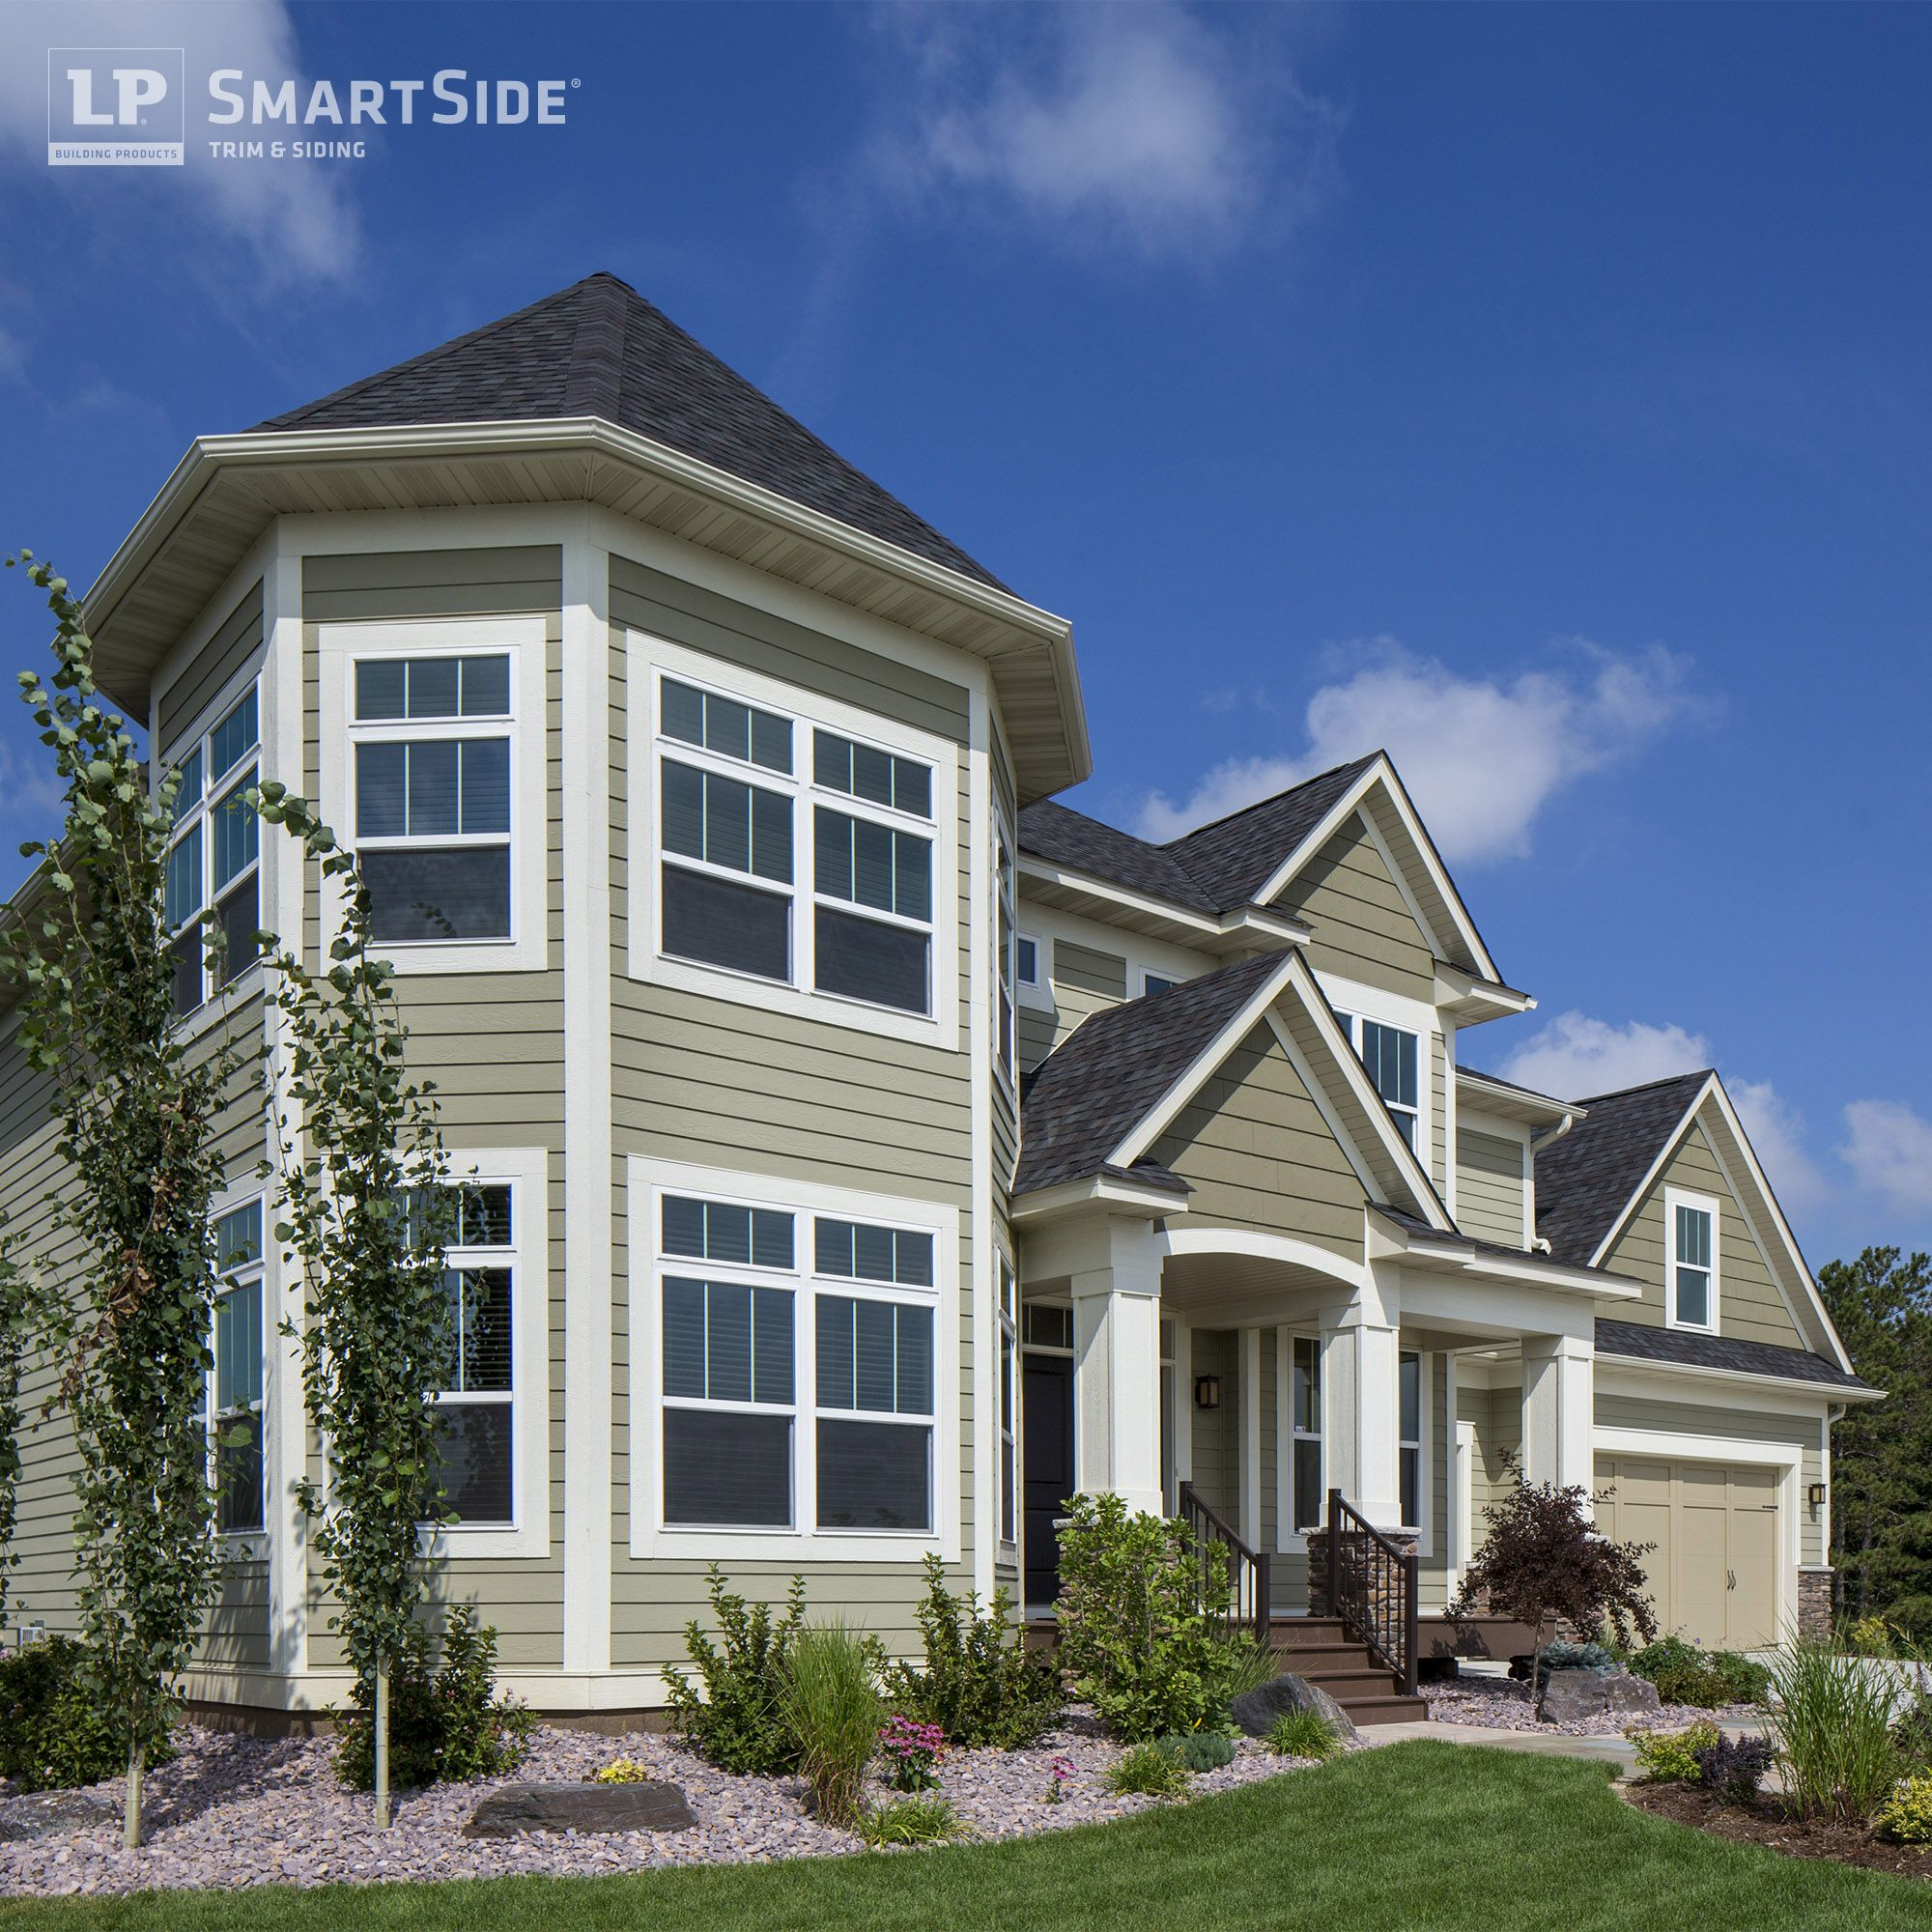 Lp smartside trim siding in custom paint colors herbal for Homes with wood siding